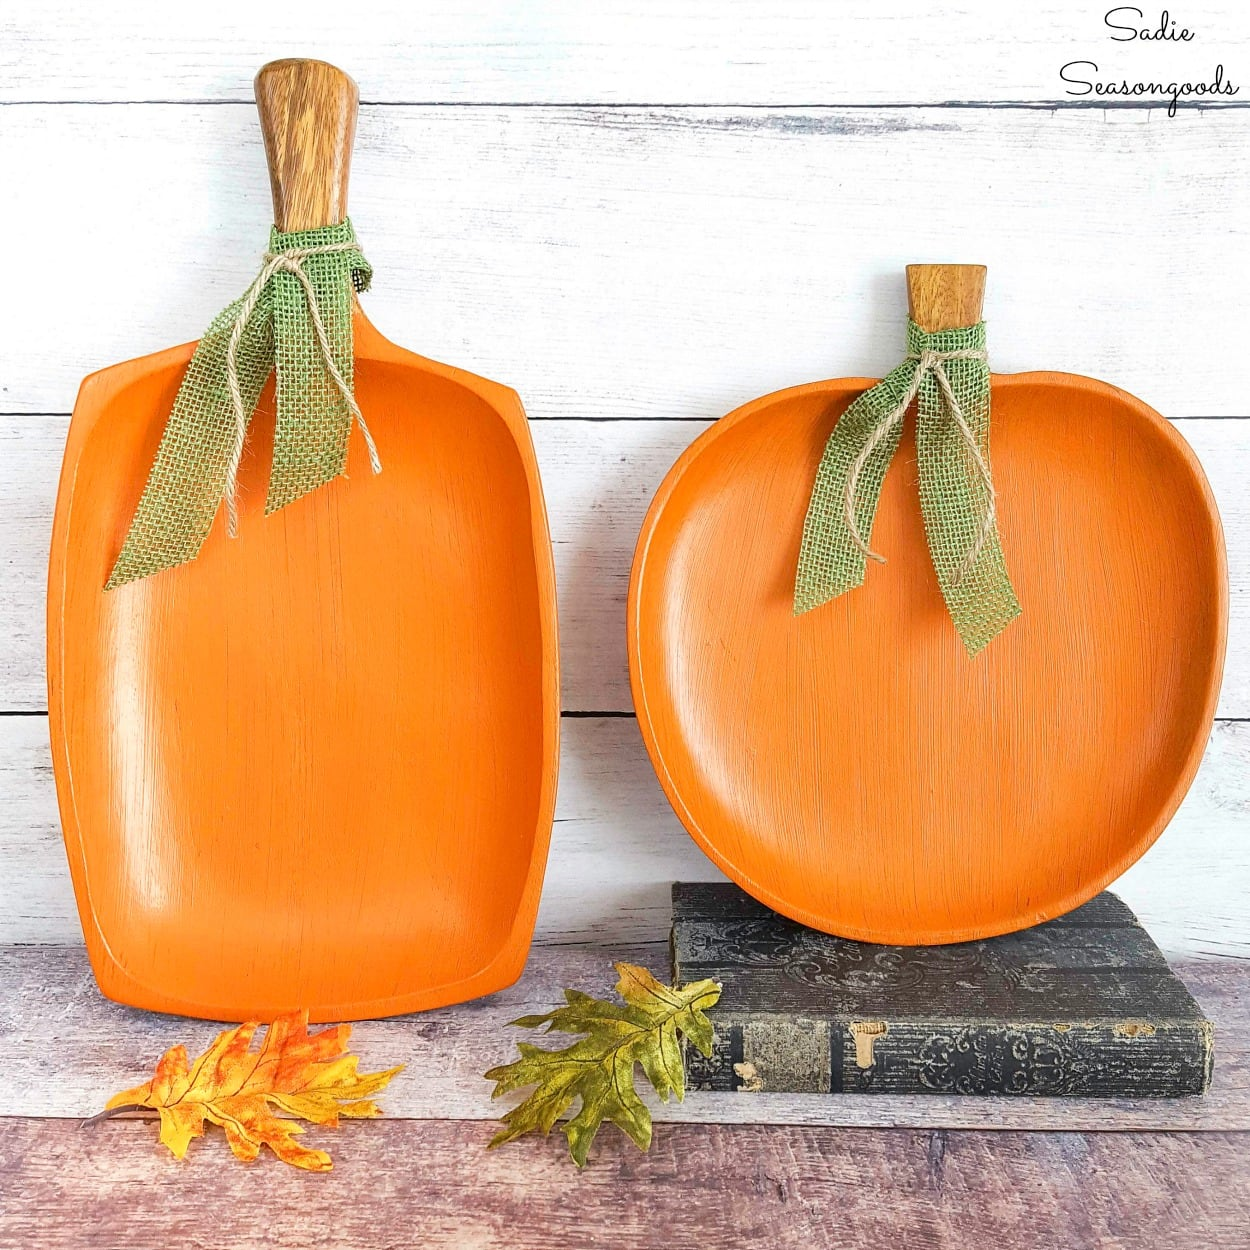 Painted Wood Pumpkins for Rustic Fall Decor